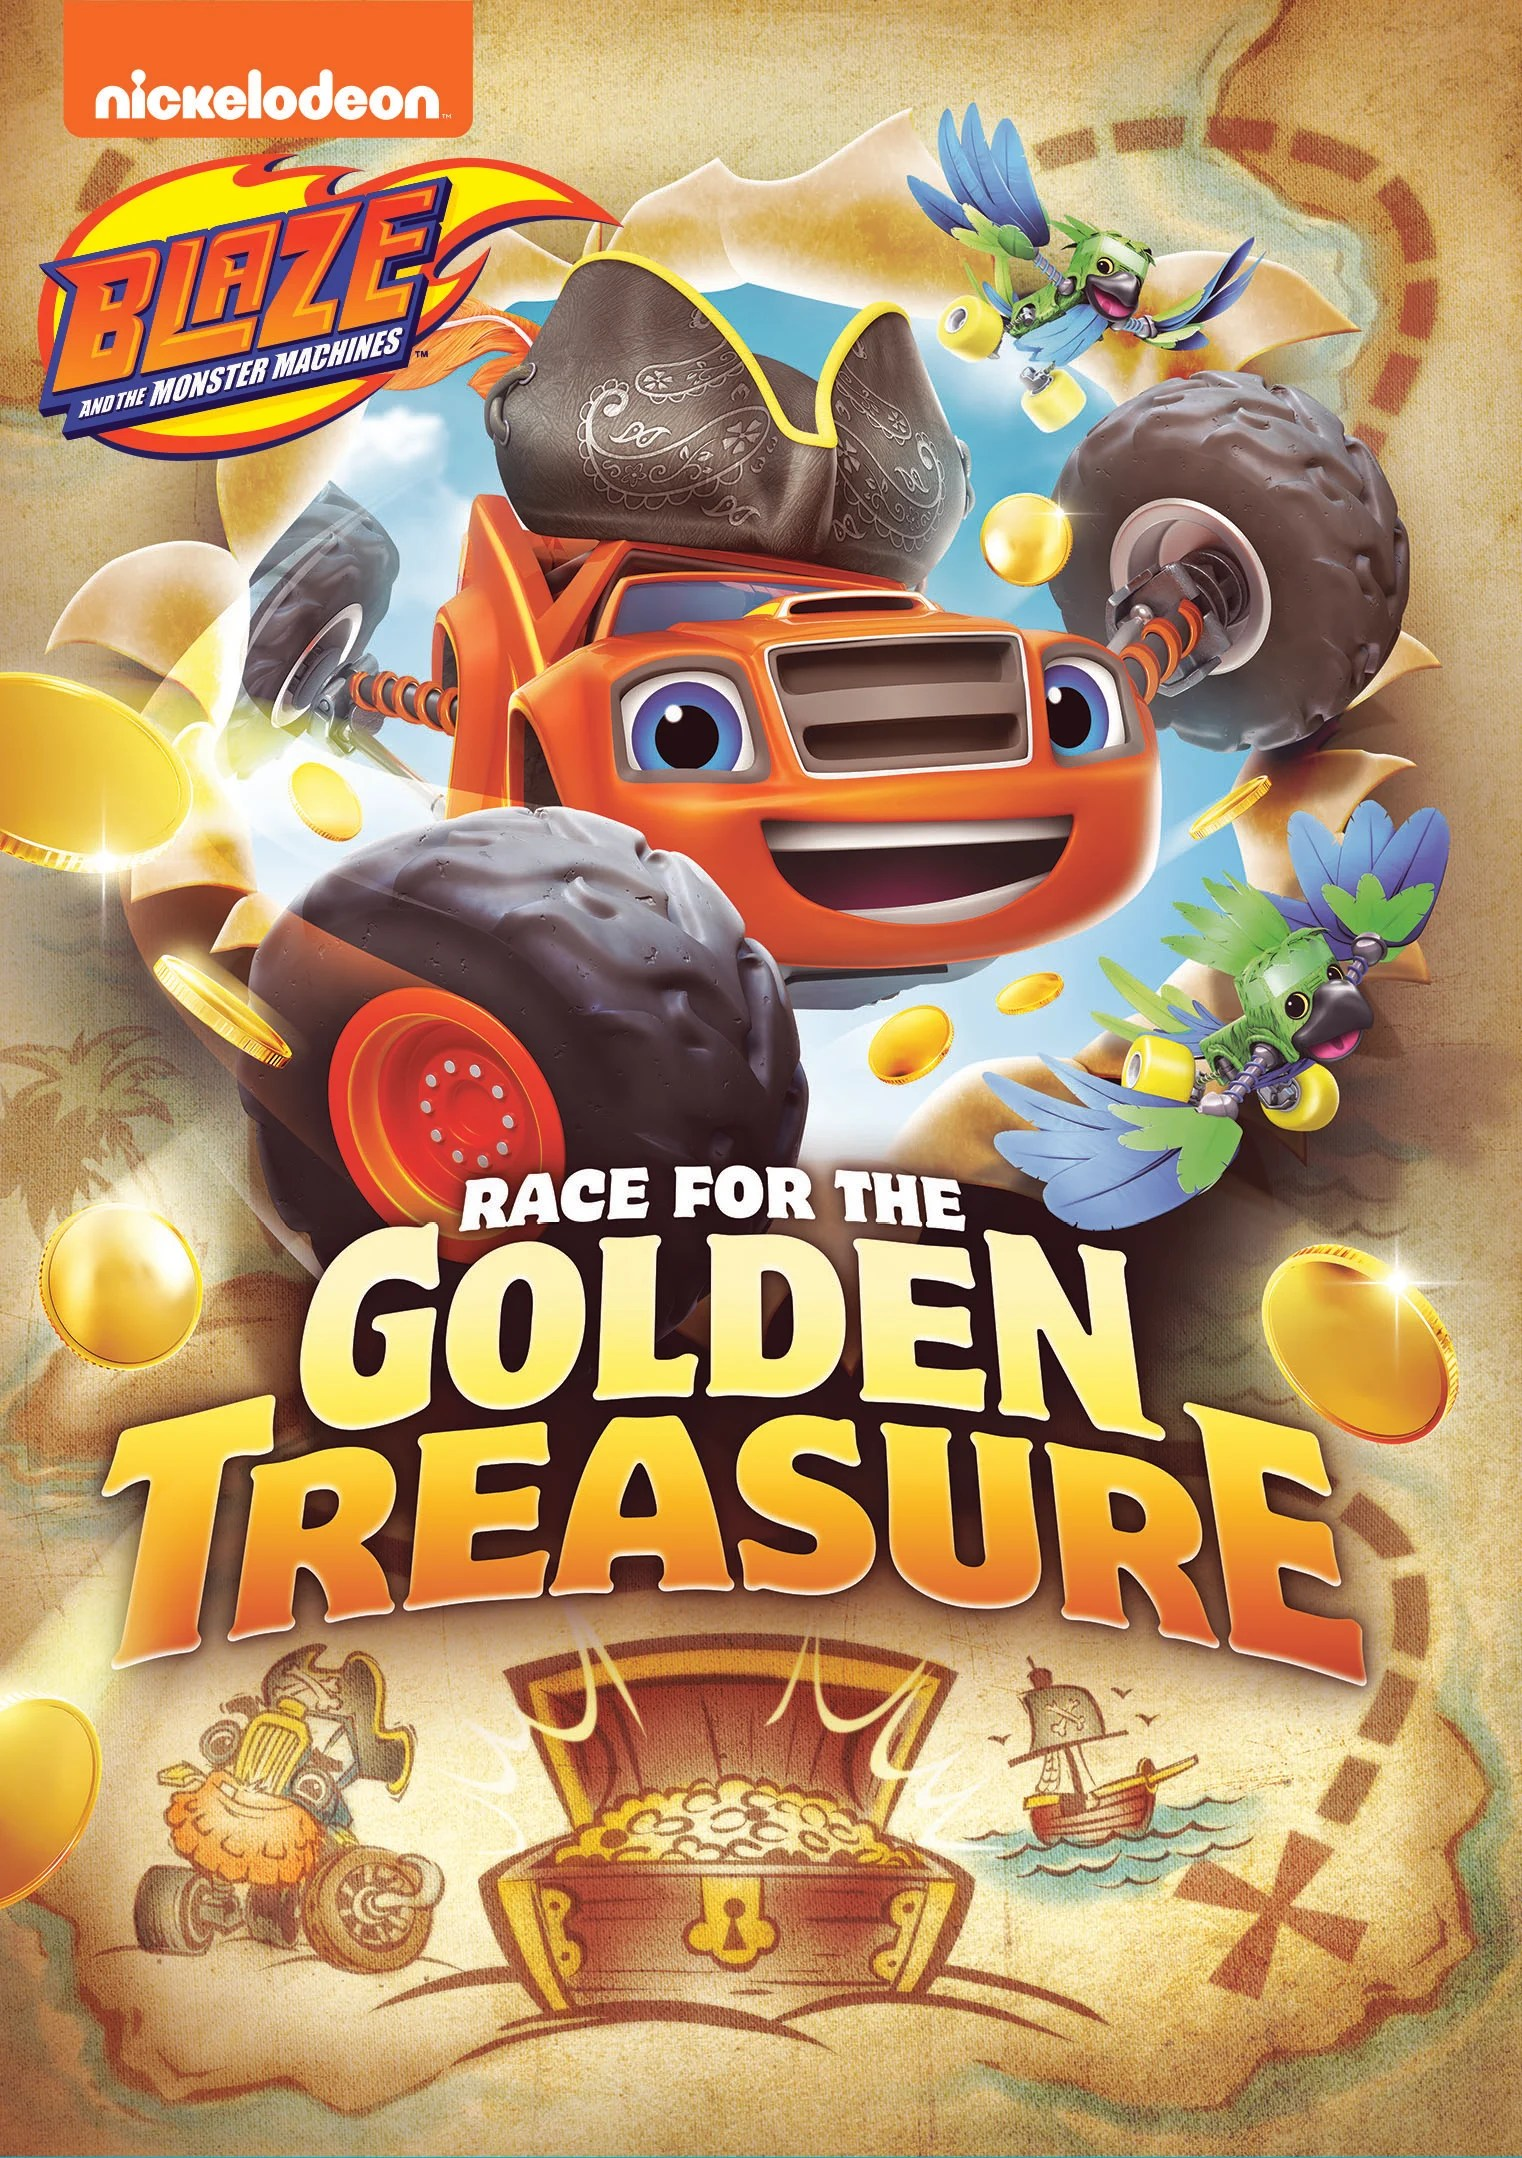 Blaze and the Monster Machines are speeding back onto DVD for all-new high-speed, high seas adventures in Blaze and the Monster Machines: Race for the Golden Treasure! Arriving on July 28, 2020, preschoolers can race along with Blaze and his friends as they embark on epic action-packed treasure hunts.